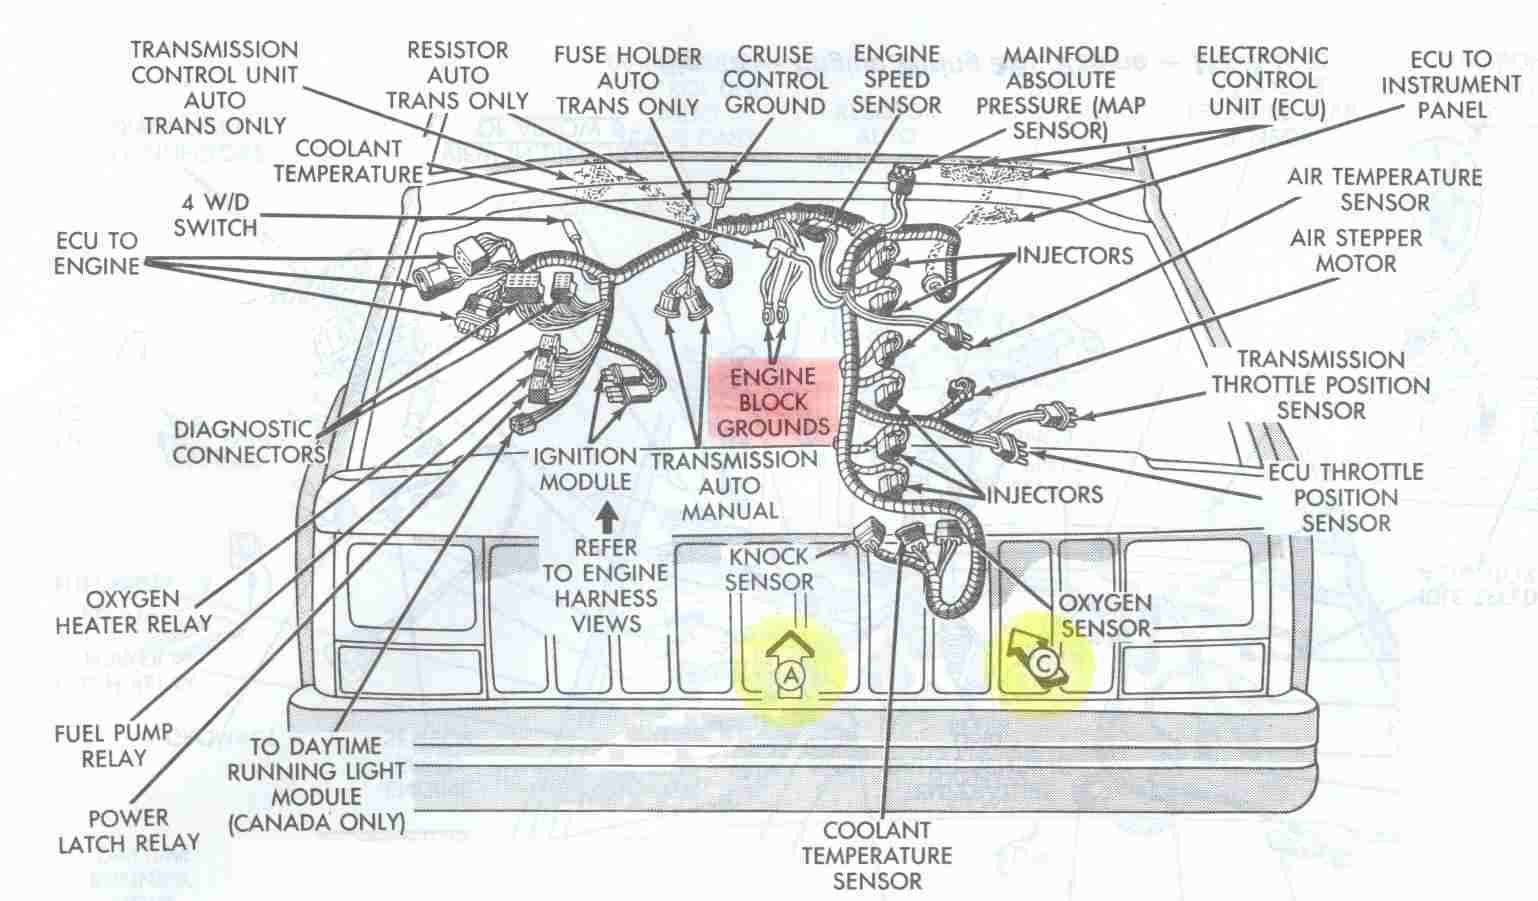 ab0134a7d9e021431187af597eb4aeca engine bay schematic showing major electrical ground points for 1997 Club Car Wiring Schematic at gsmx.co